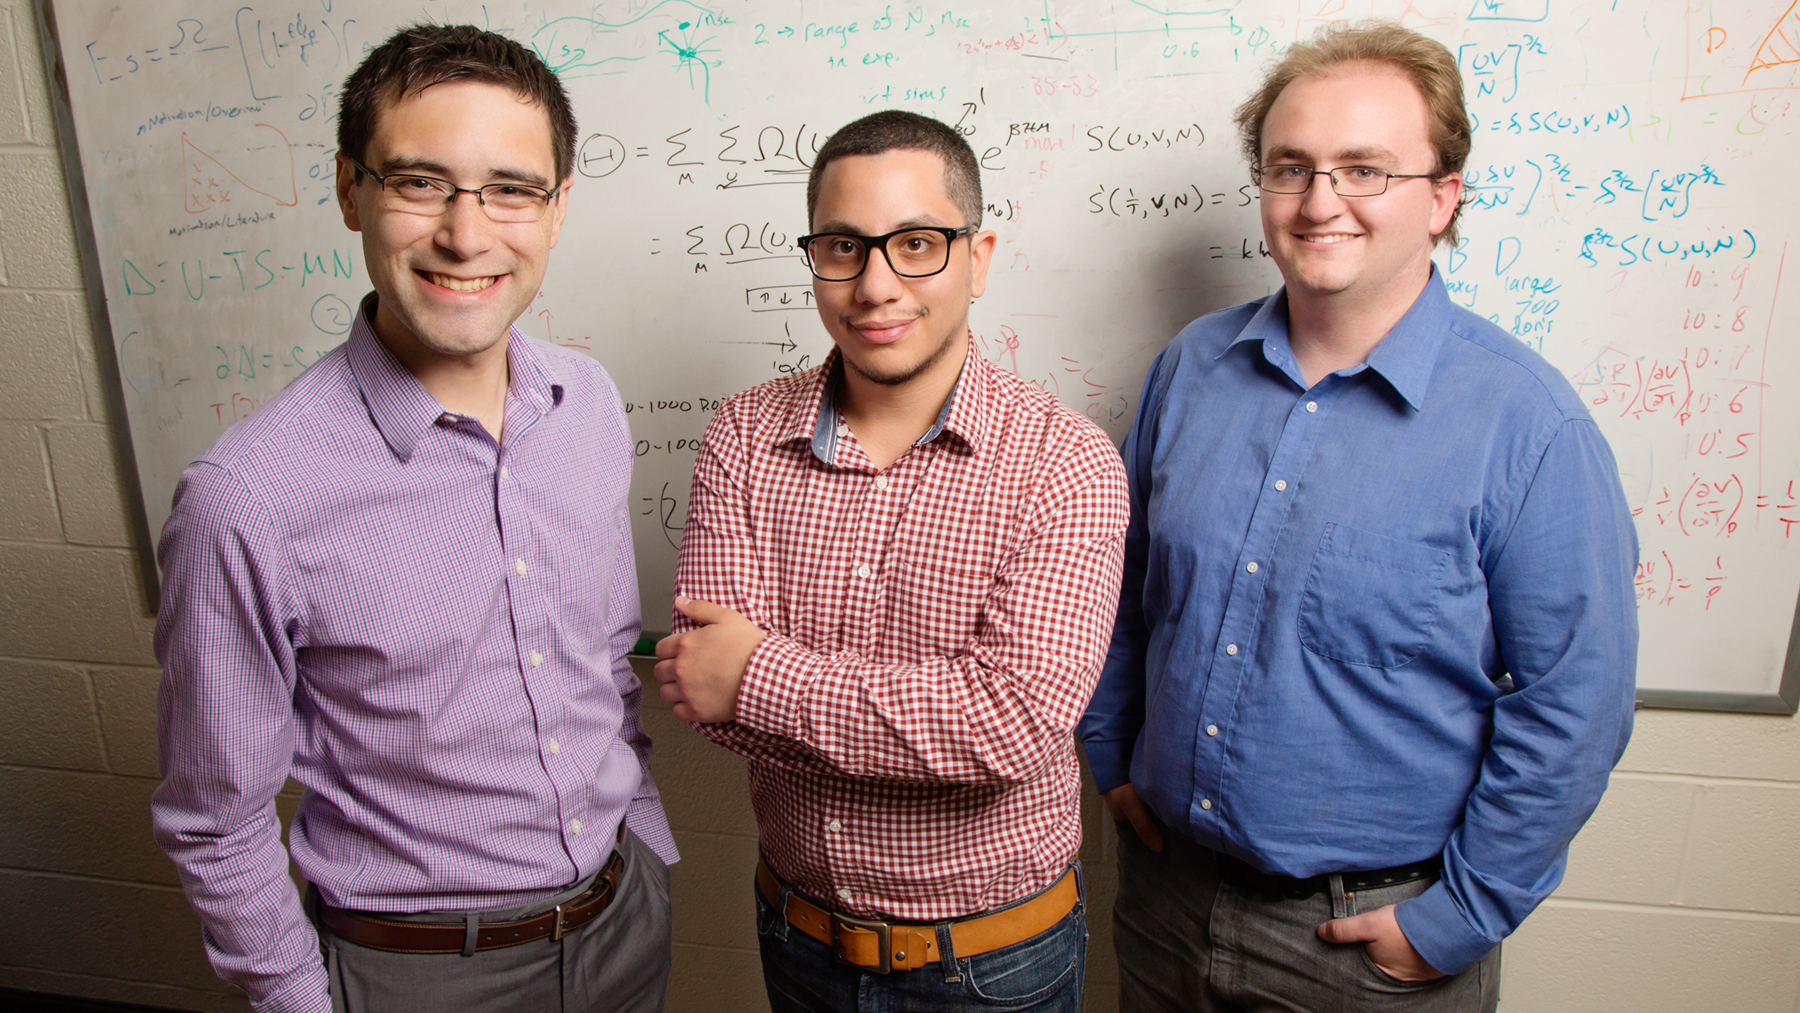 chemical and biomolecular engineering professor Charles Sing,and graduate students Jason Madinya and Tyler Lytle, co-authors. Photo by L. Brian Stauffer